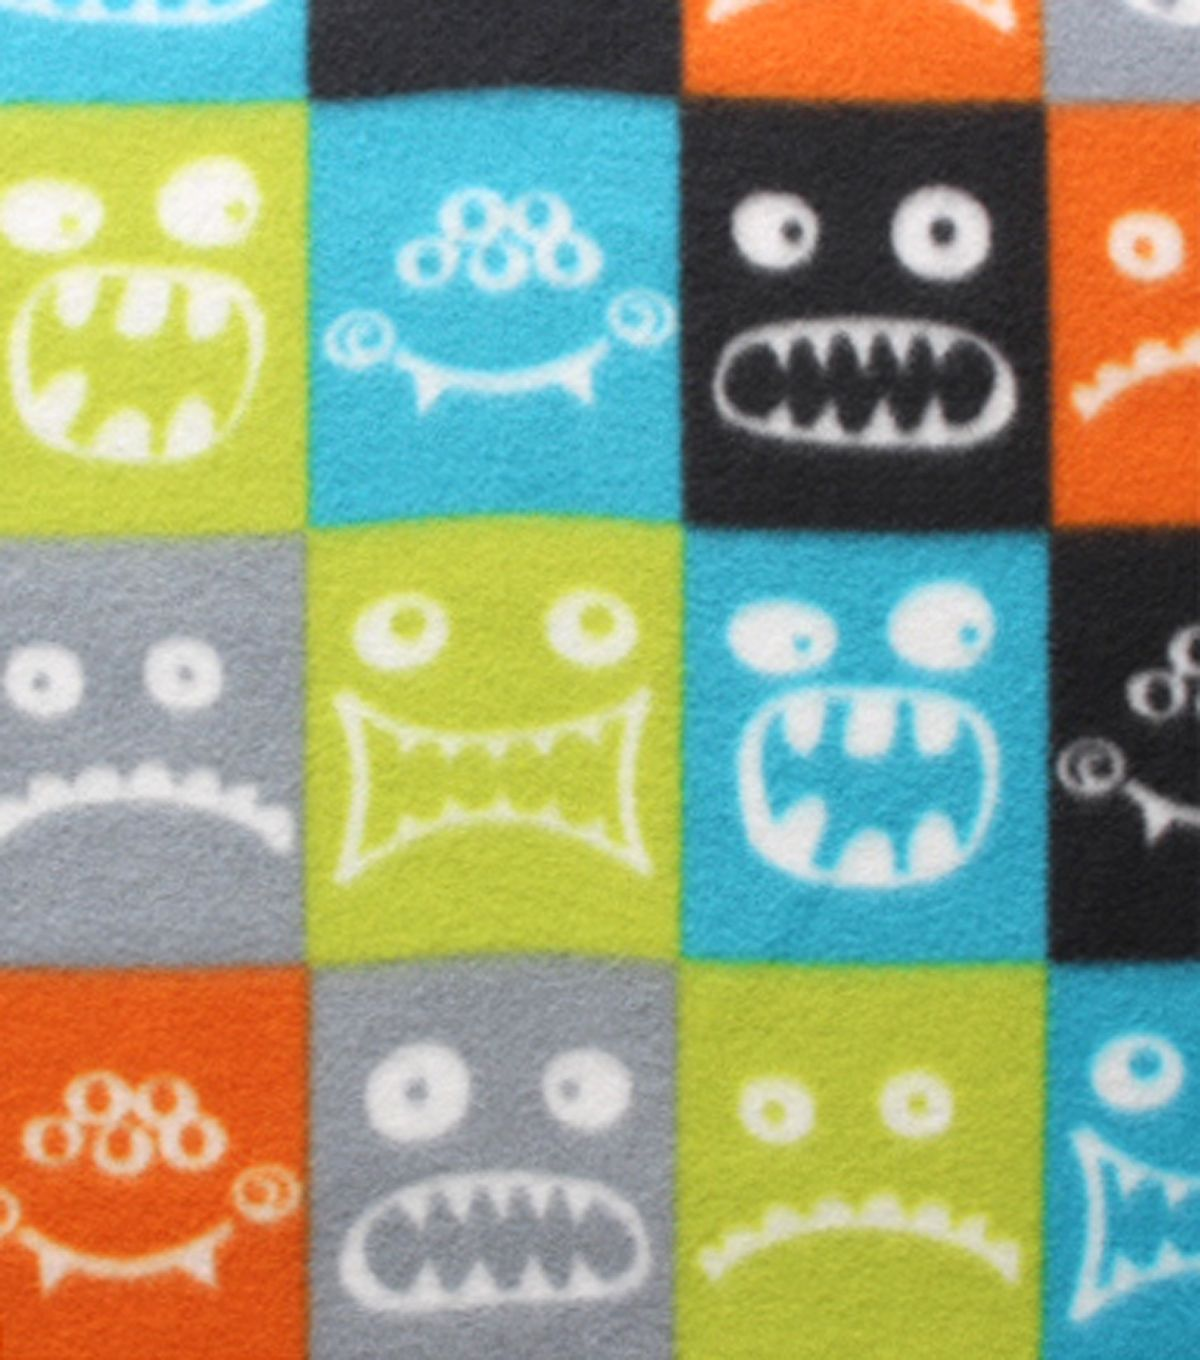 Blizzard fleece fabric blocked monster faces sewing stitchery